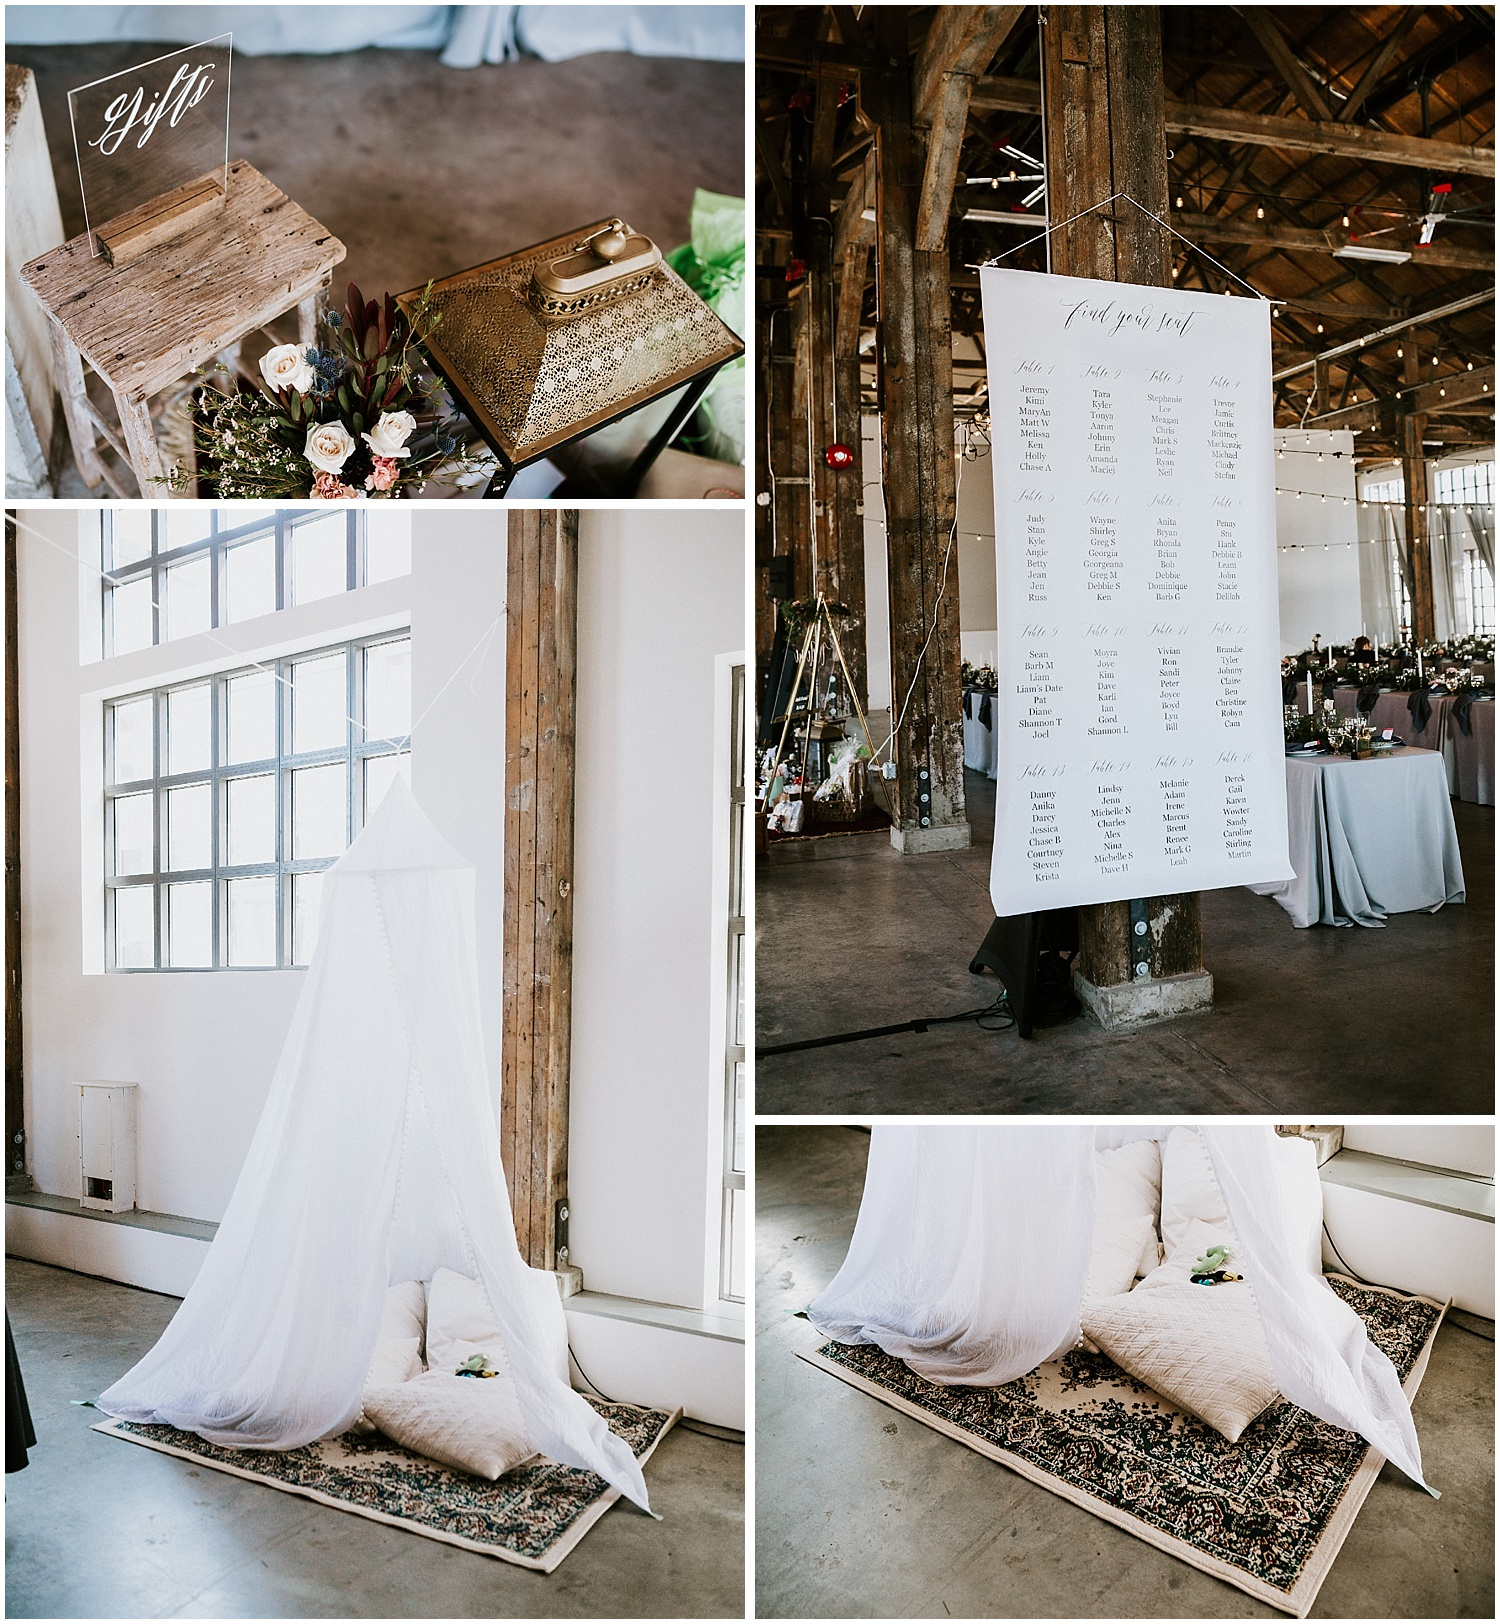 north vancouver diy wedding kids play tent  greenery pipe shop venue decor wedding intimate elopement long table decor by stacie carr photography